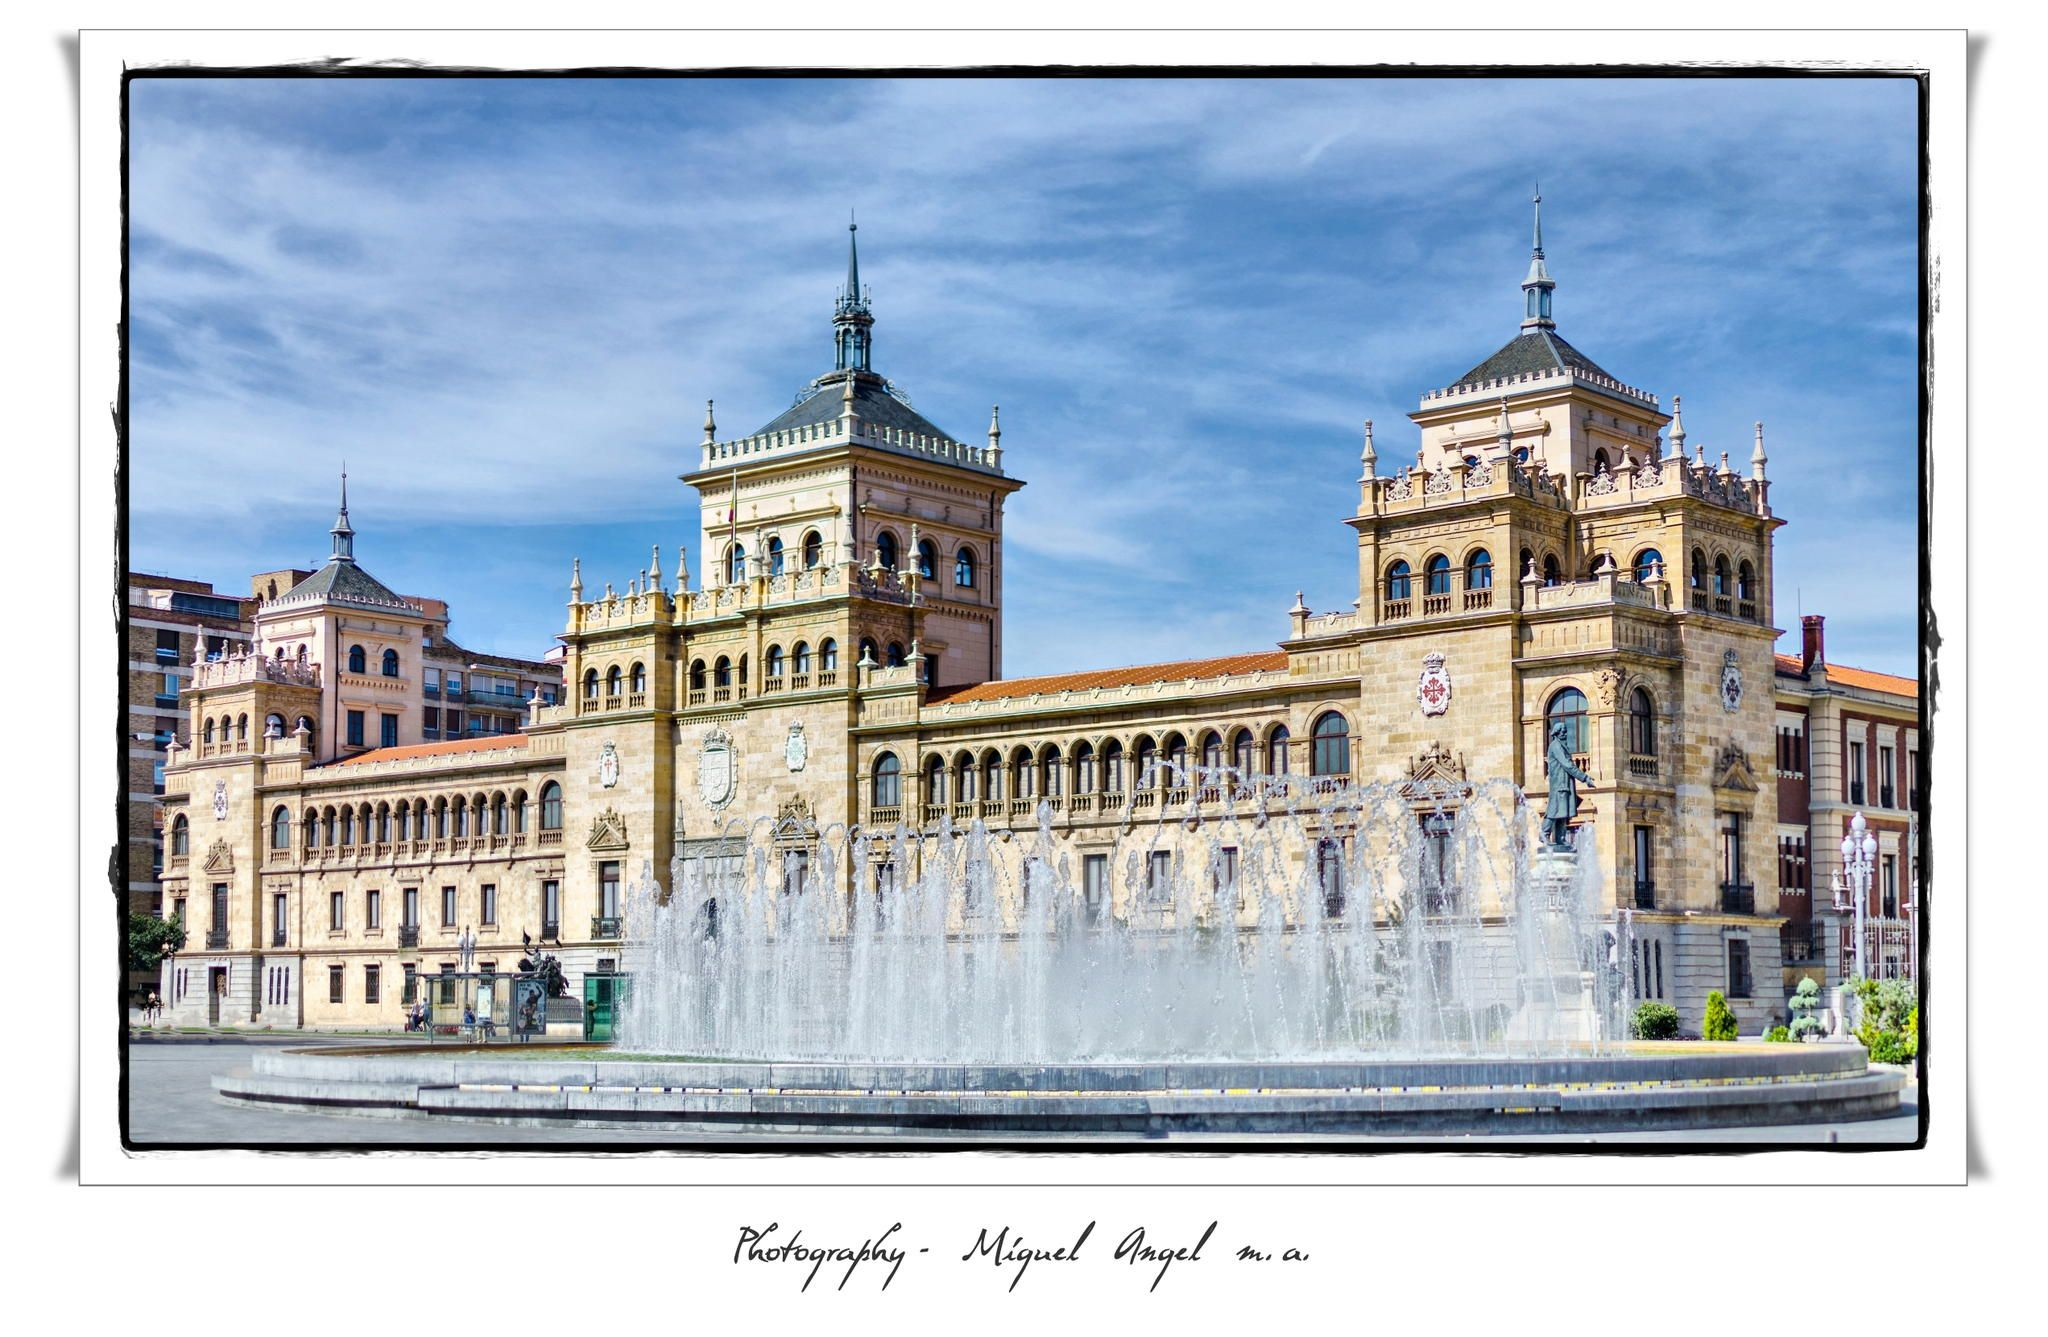 Academia caballeria - Valladolid by Miguel Angel  on 500px